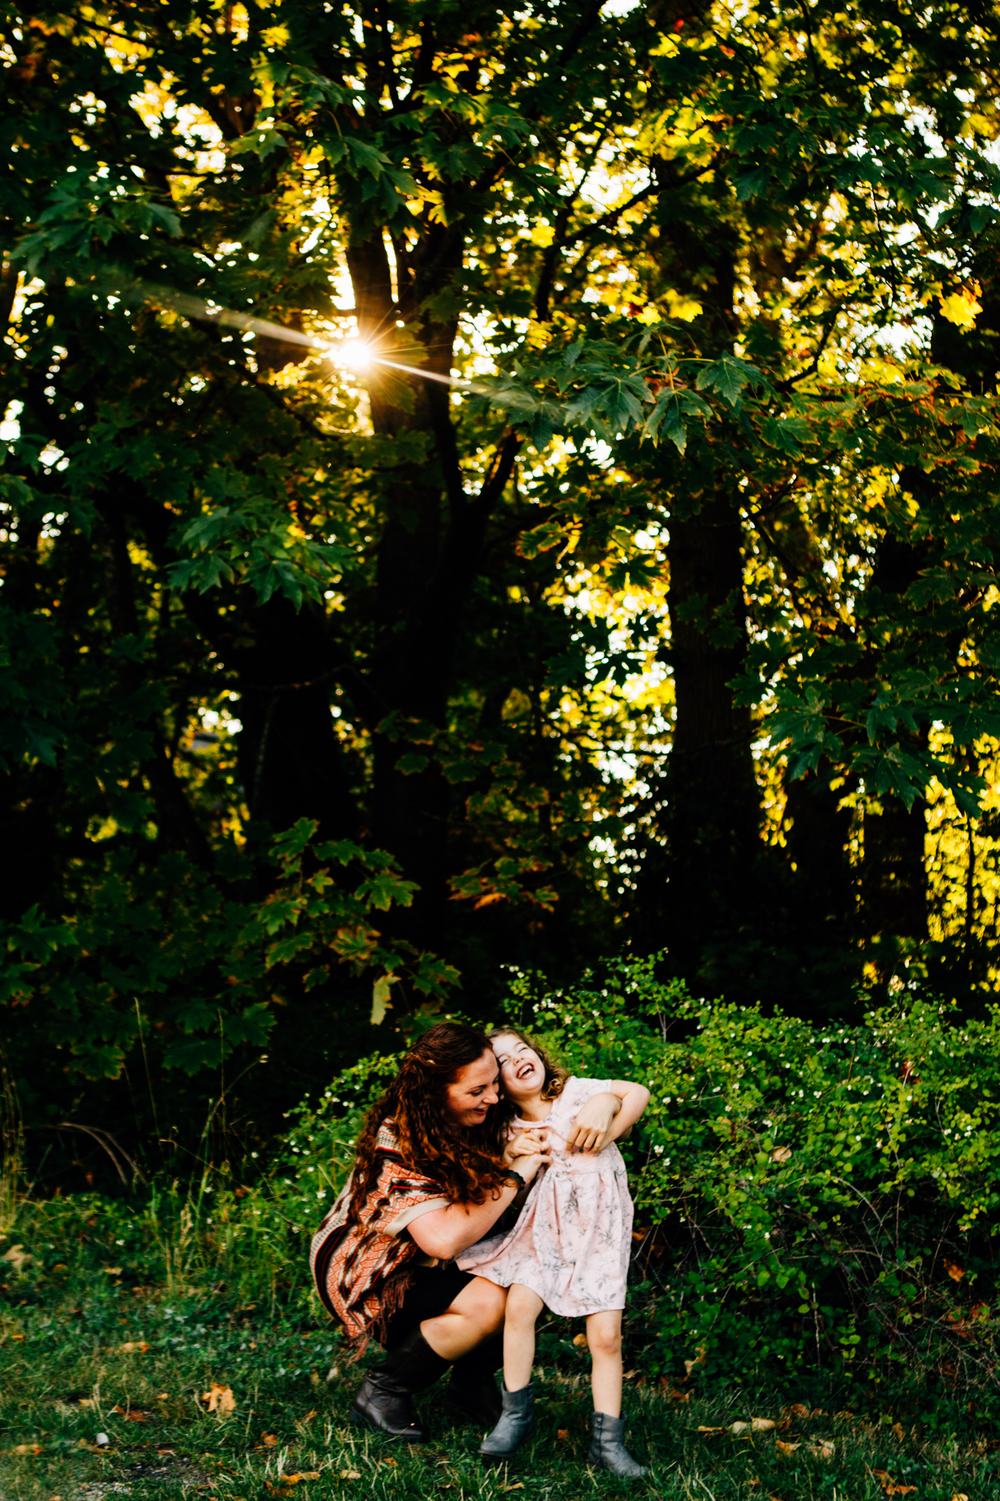 Vancouver Mother Daughter Photographer - Emmy Lou Virginia Photography.jpg